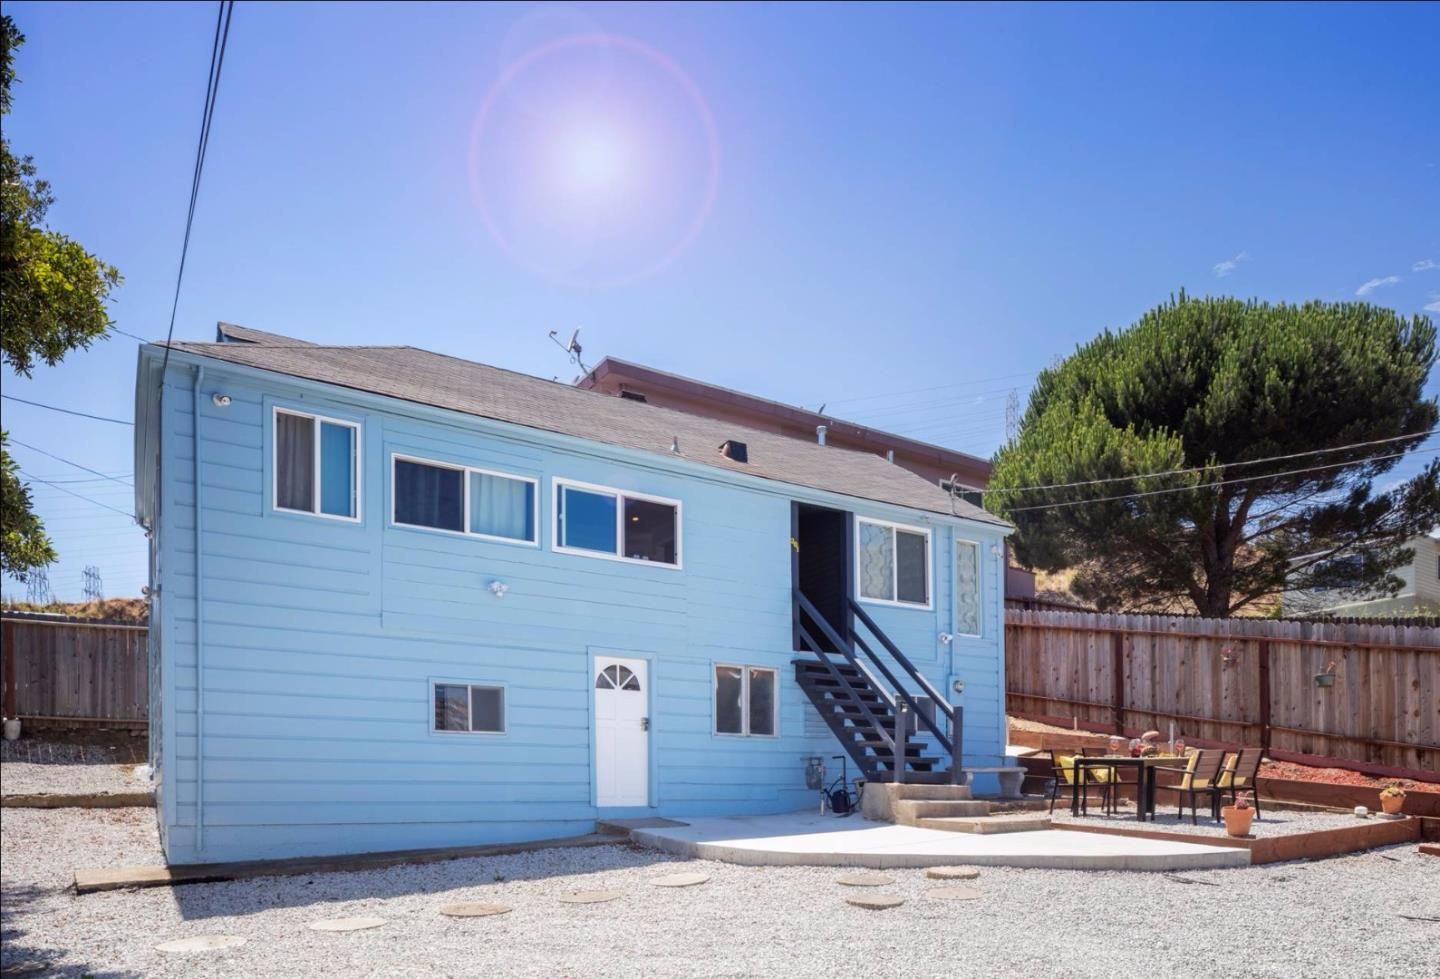 Single Family Home for Sale at 301 Chapman Avenue South San Francisco, California 94080 United States